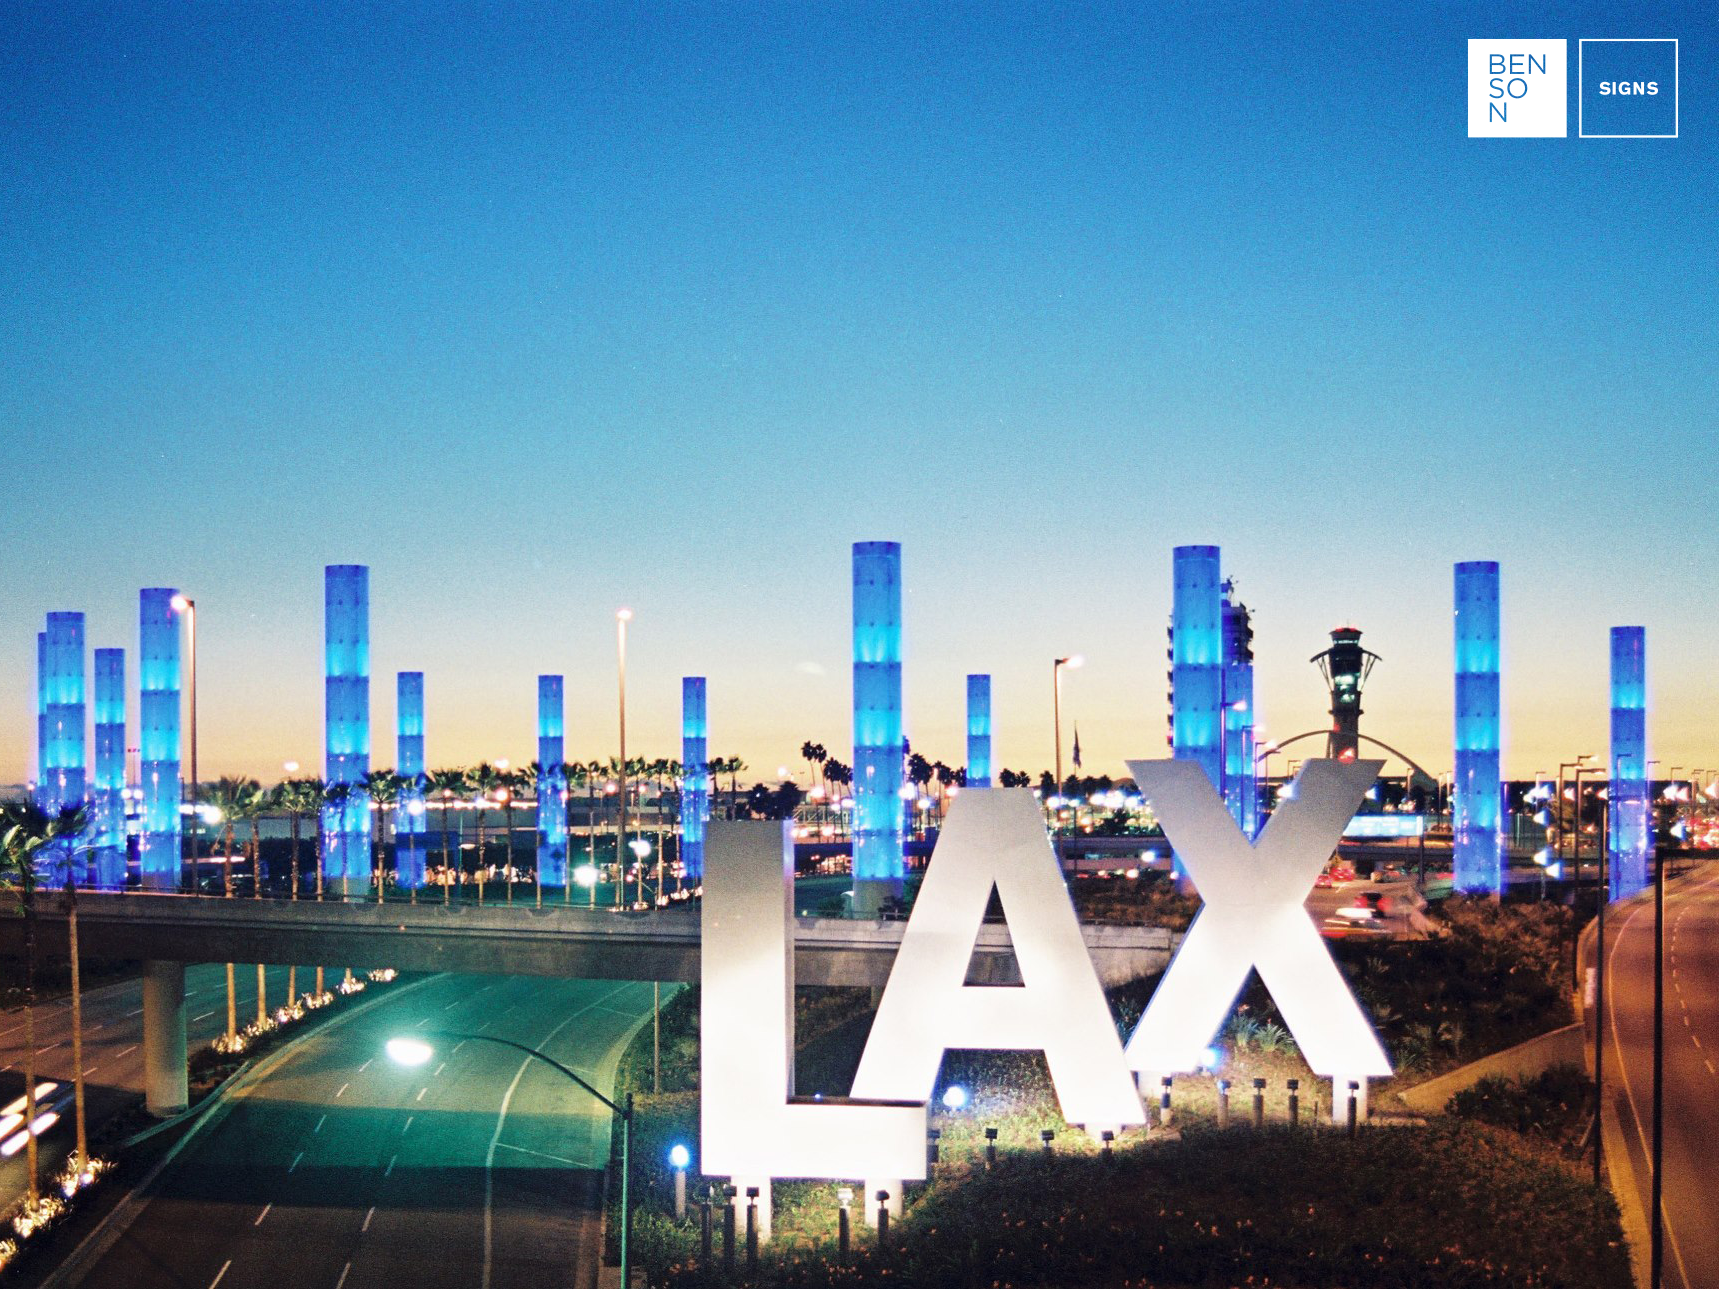 Benson Signs Selected as Supplier for LAX Project